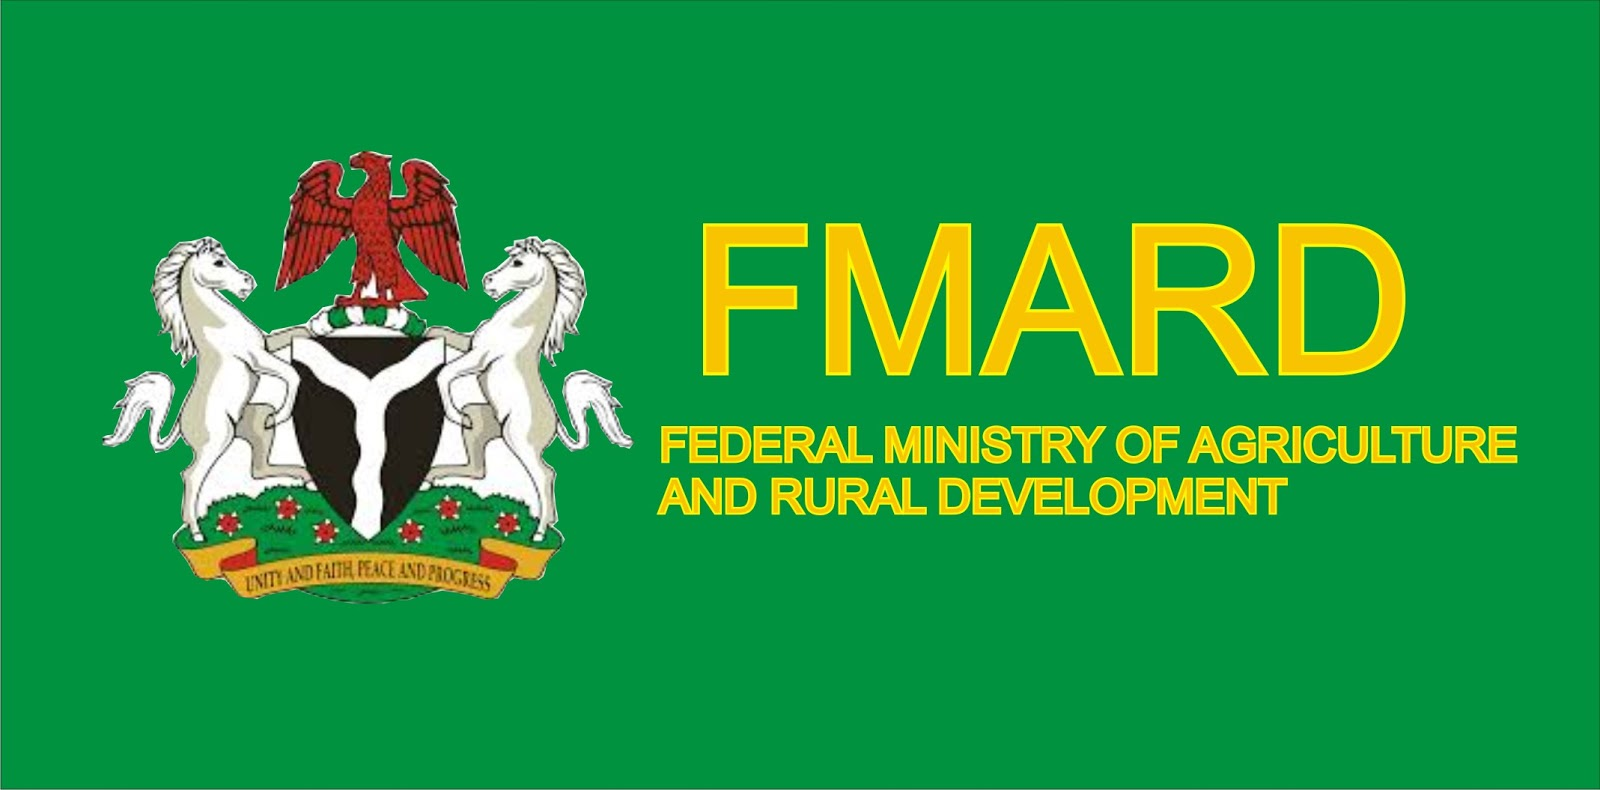 Federal Ministry Of Agriculture And Rural Development FMARD Recruitment 2018